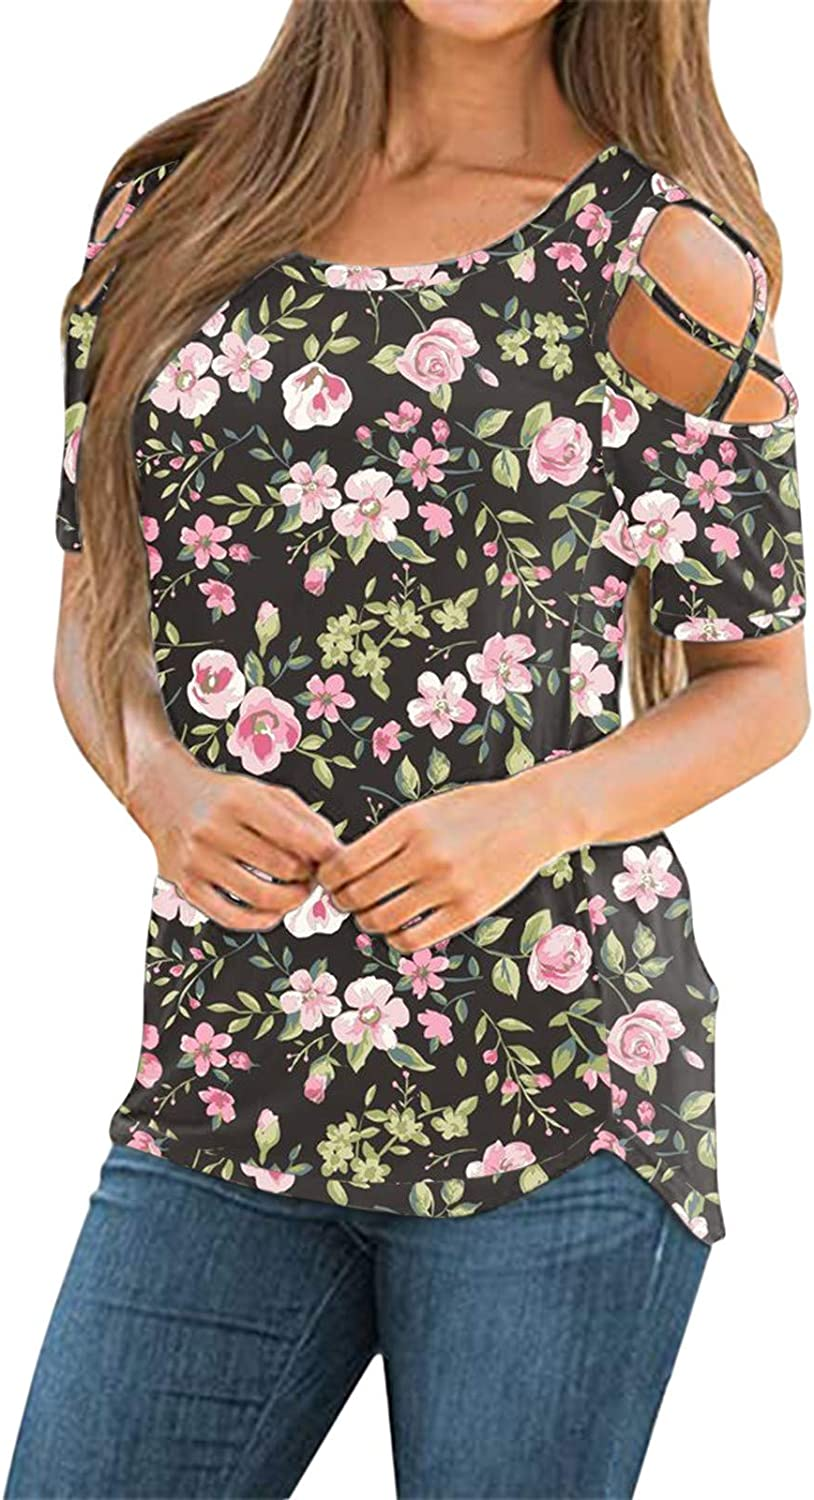 Summer Tops for Women,Womens Tshirts Short Sleeve Summer Tops Strappy Cold Shoulder Shirts Crew Neck Tee Tunic Pink